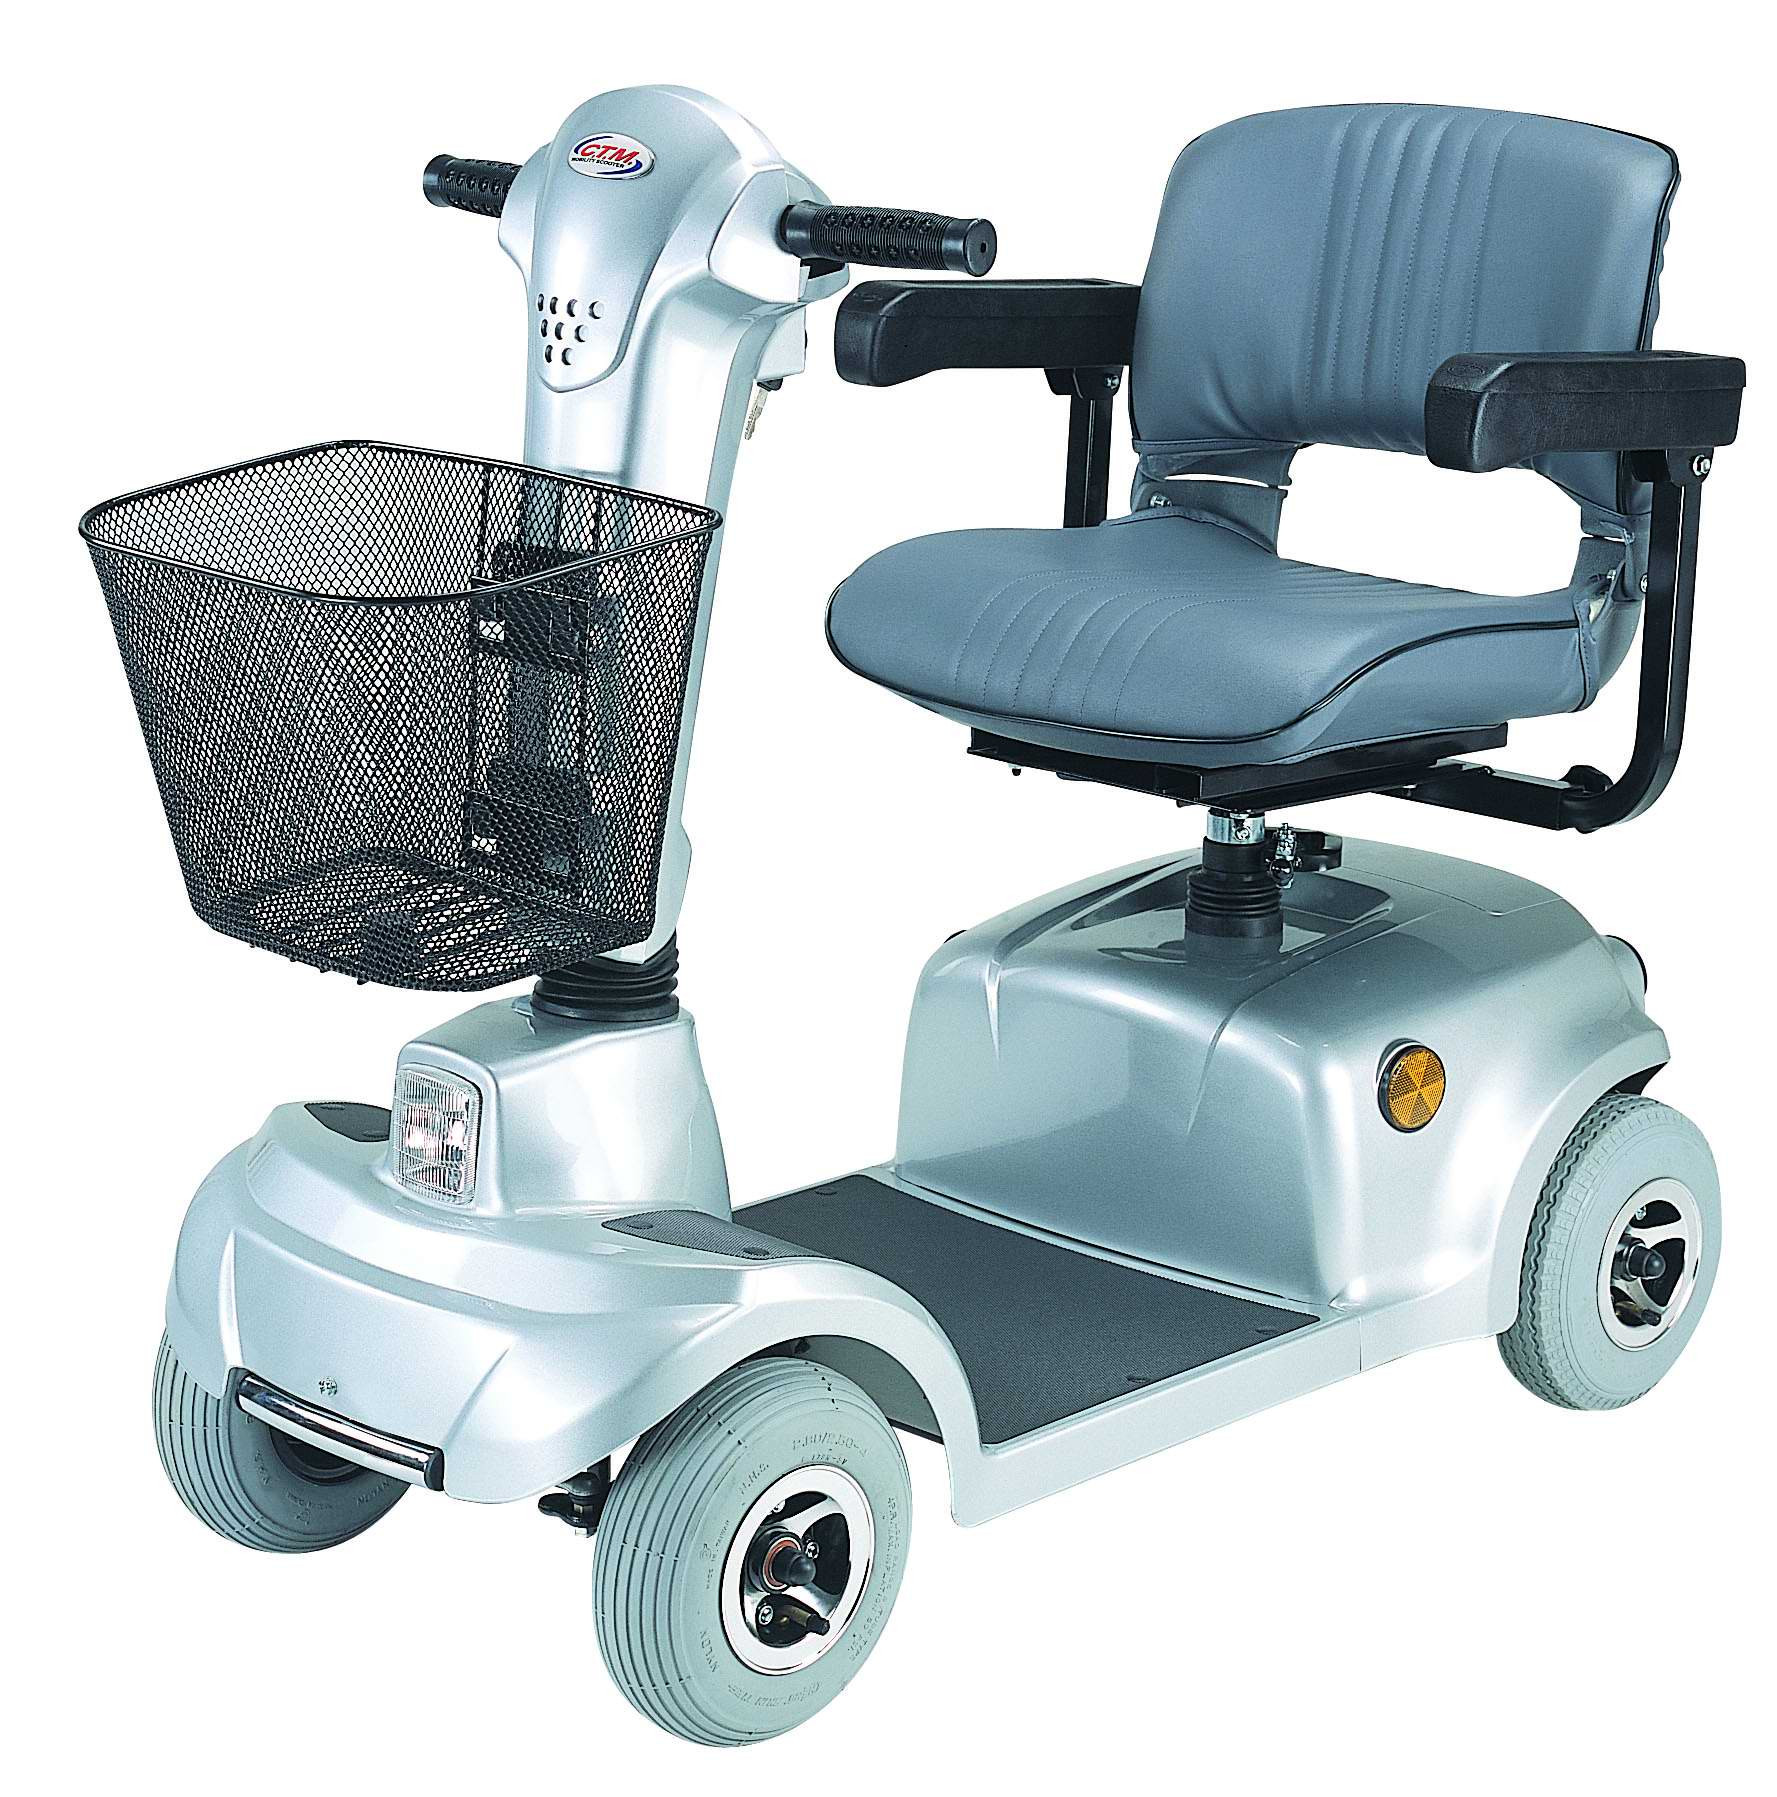 Ctm hs 360 mobility scooter for sale lowest prices tax for Mobility scooters